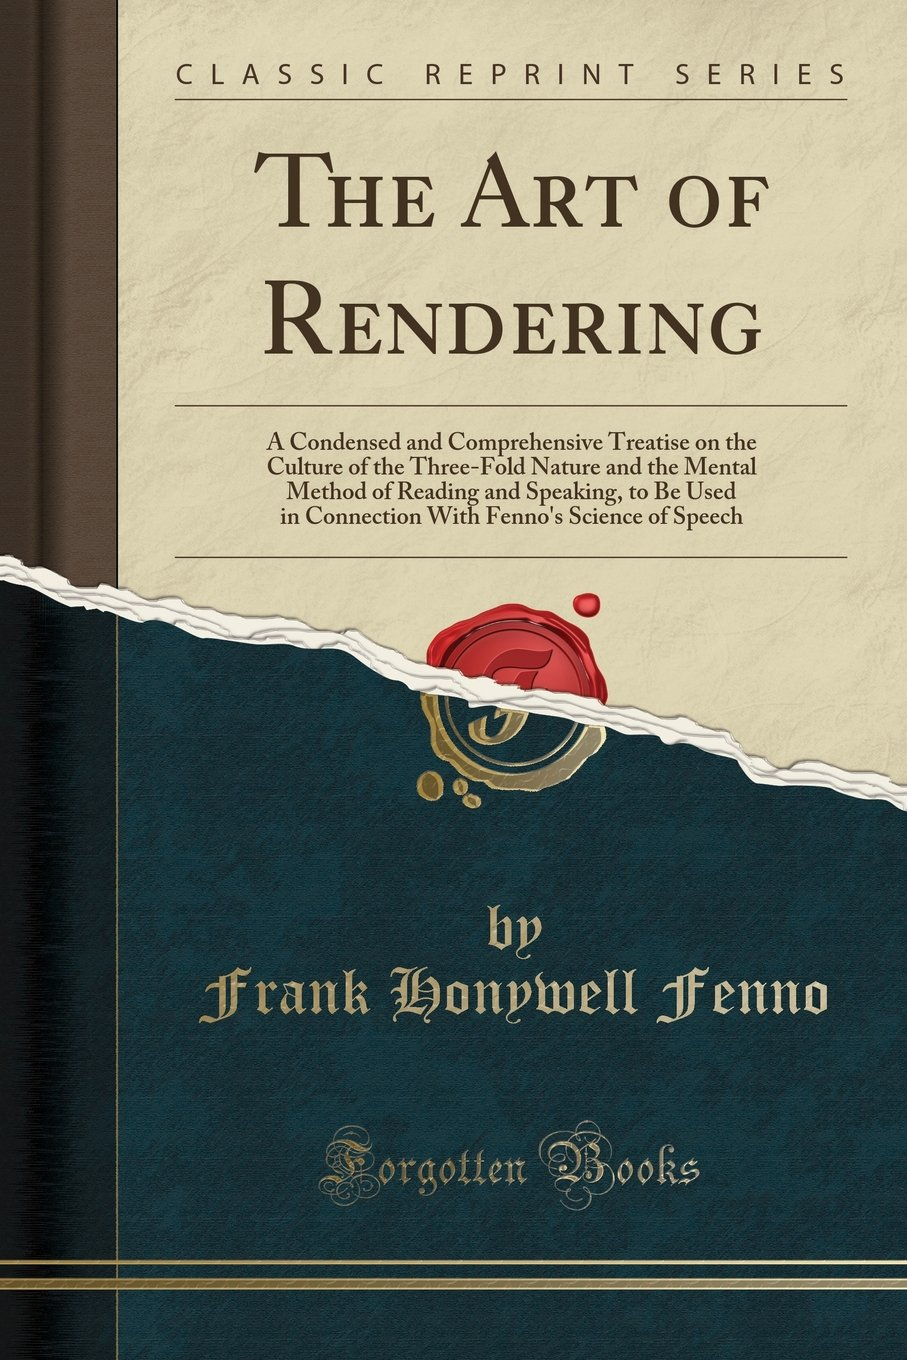 Read Online The Art of Rendering: A Condensed and Comprehensive Treatise on the Culture of the Three-Fold Nature and the Mental Method of Reading and Speaking, to ... Fenno's Science of Speech (Classic Reprint) ebook